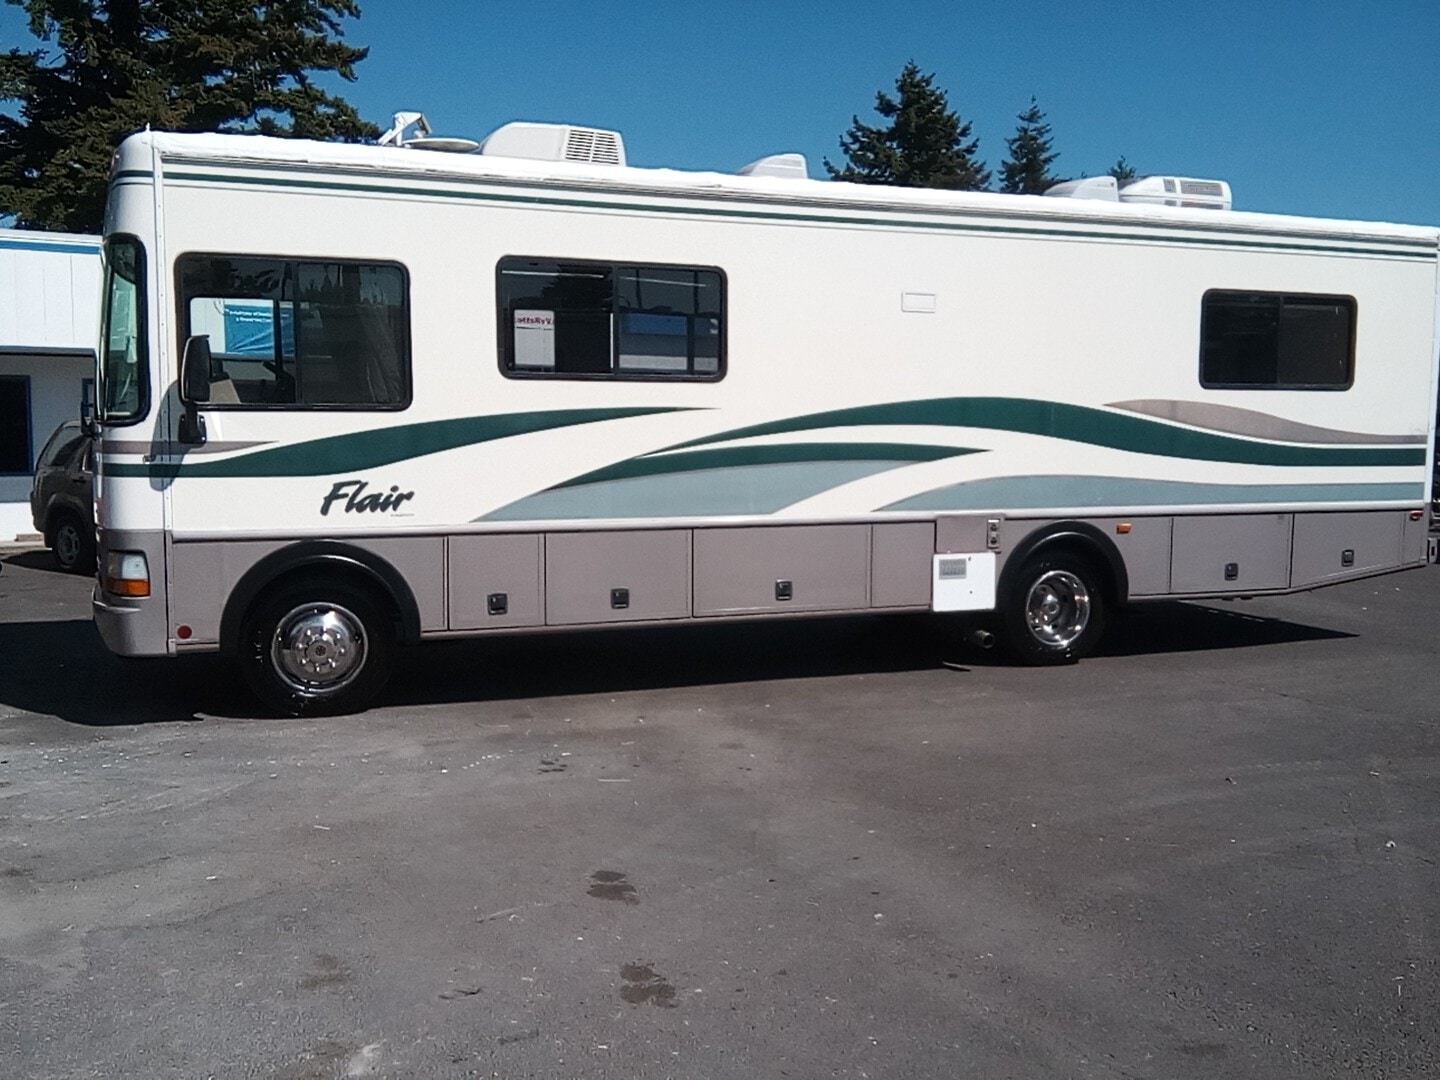 Used, 1999, Fleetwood, FLAIR, RV - Class A